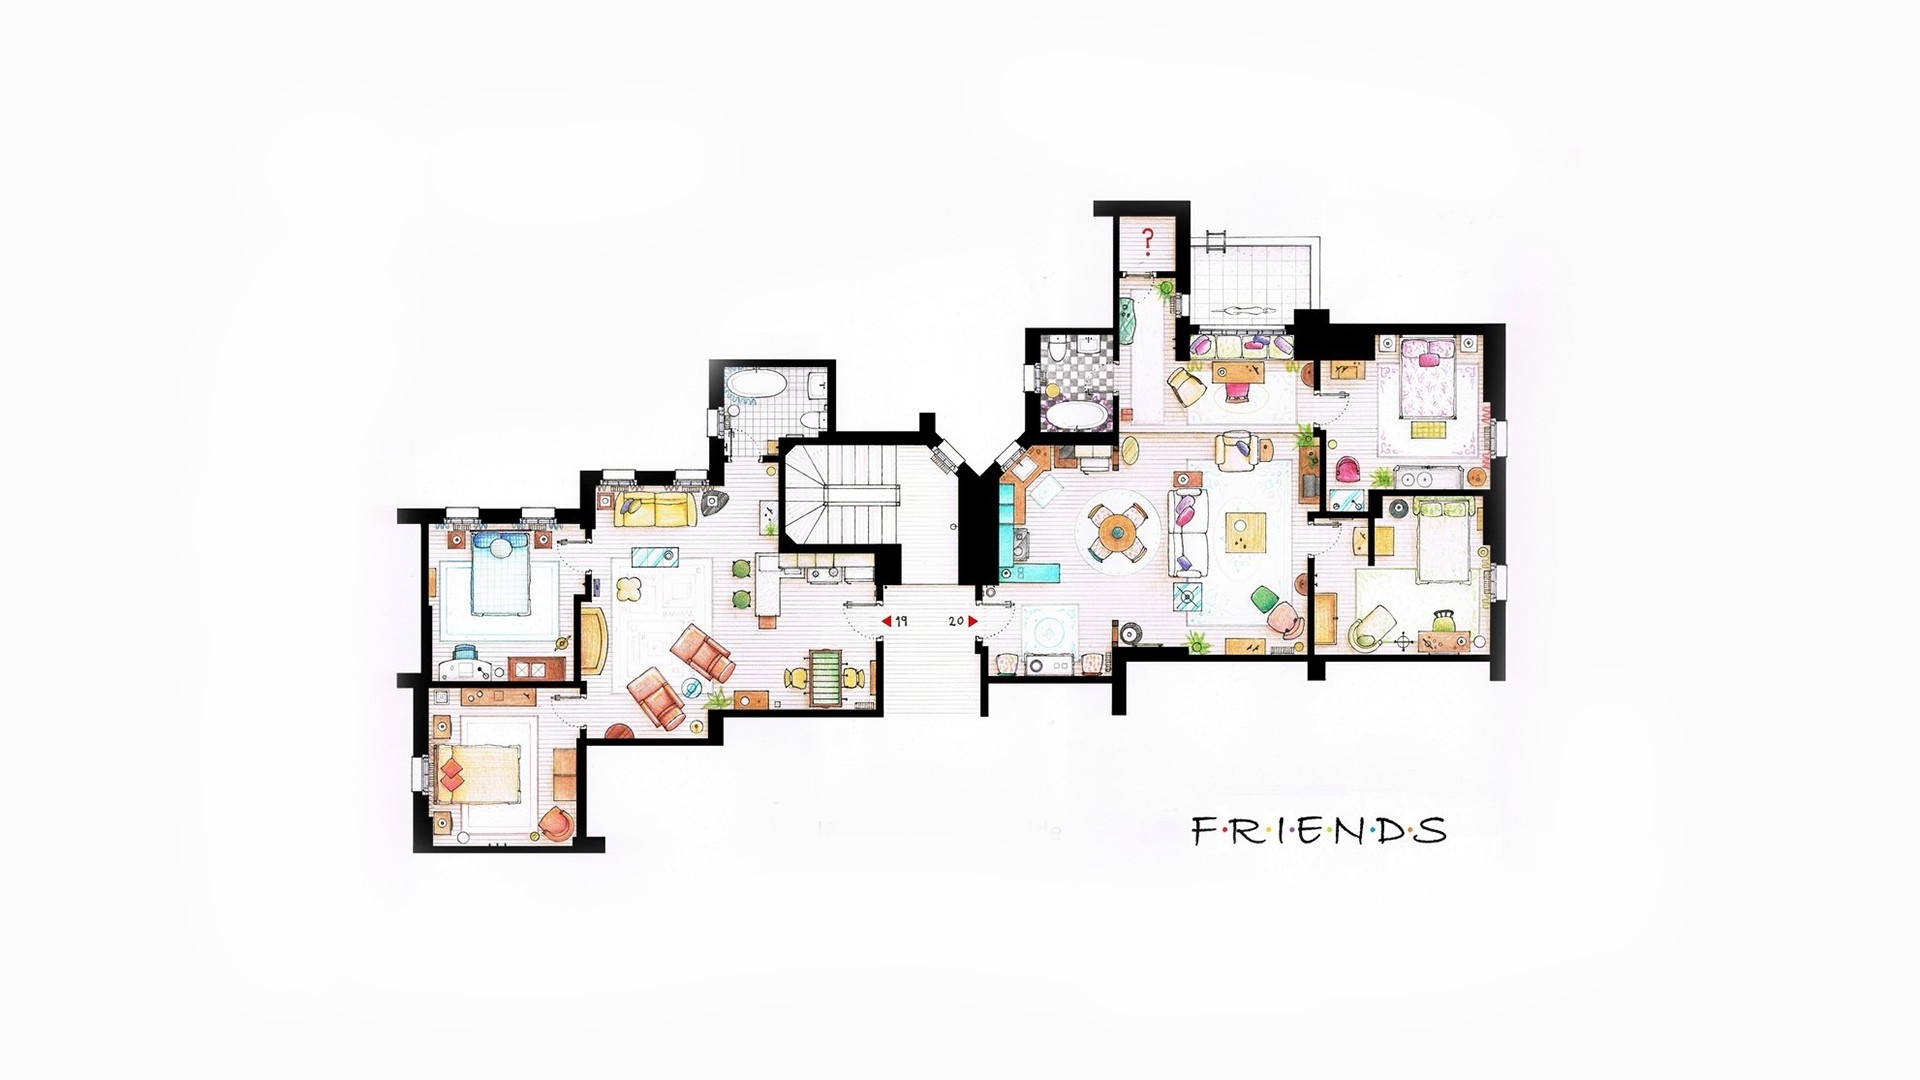 Friends Tv Show Iphone Background Iphone Wallpapers 1920x1080